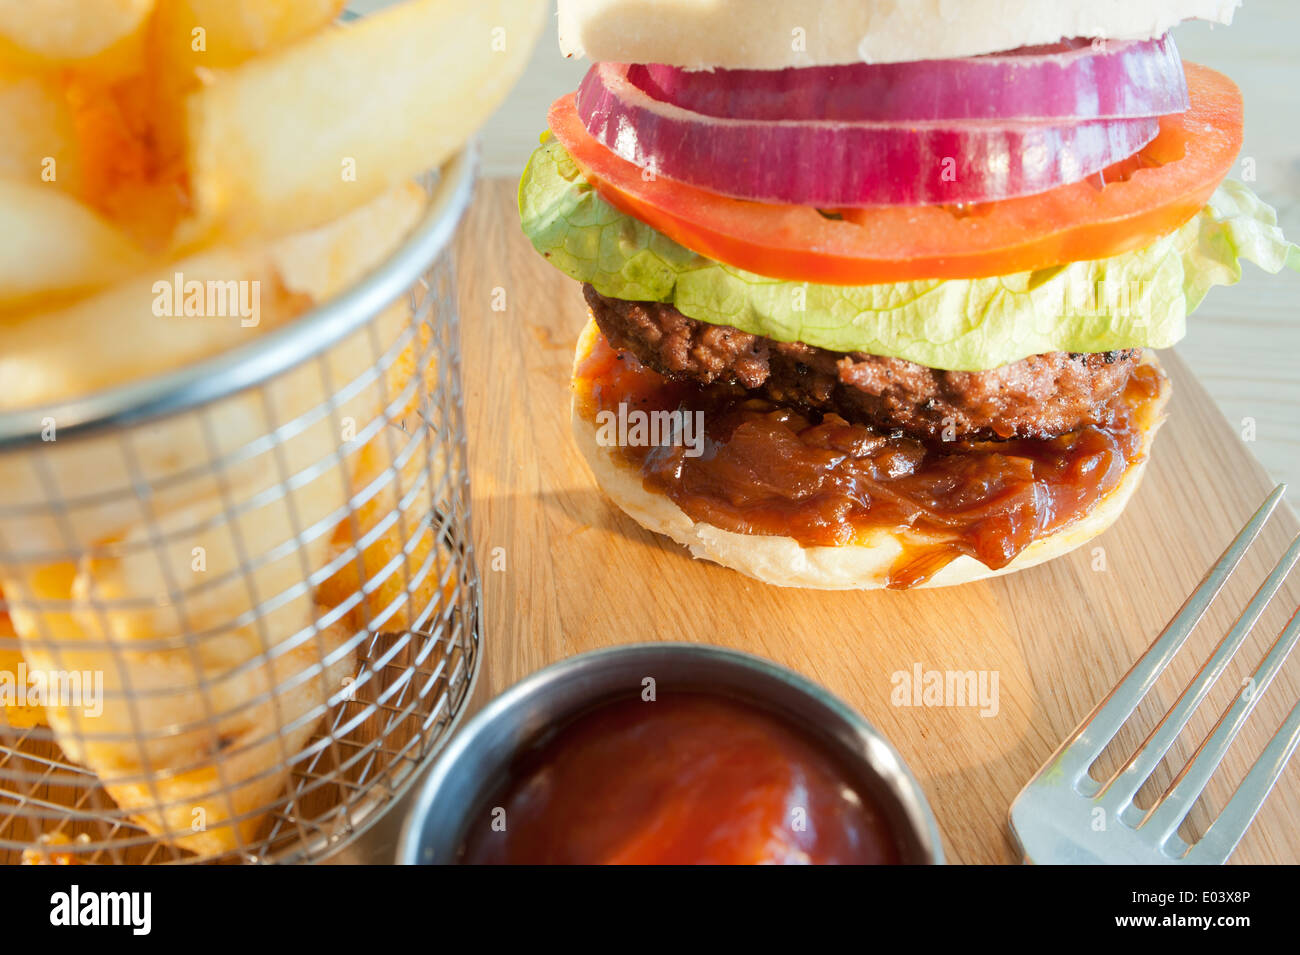 Classic burger and salad with side order of French fries or chips and tomato ketchup on a wooden plate - Stock Image